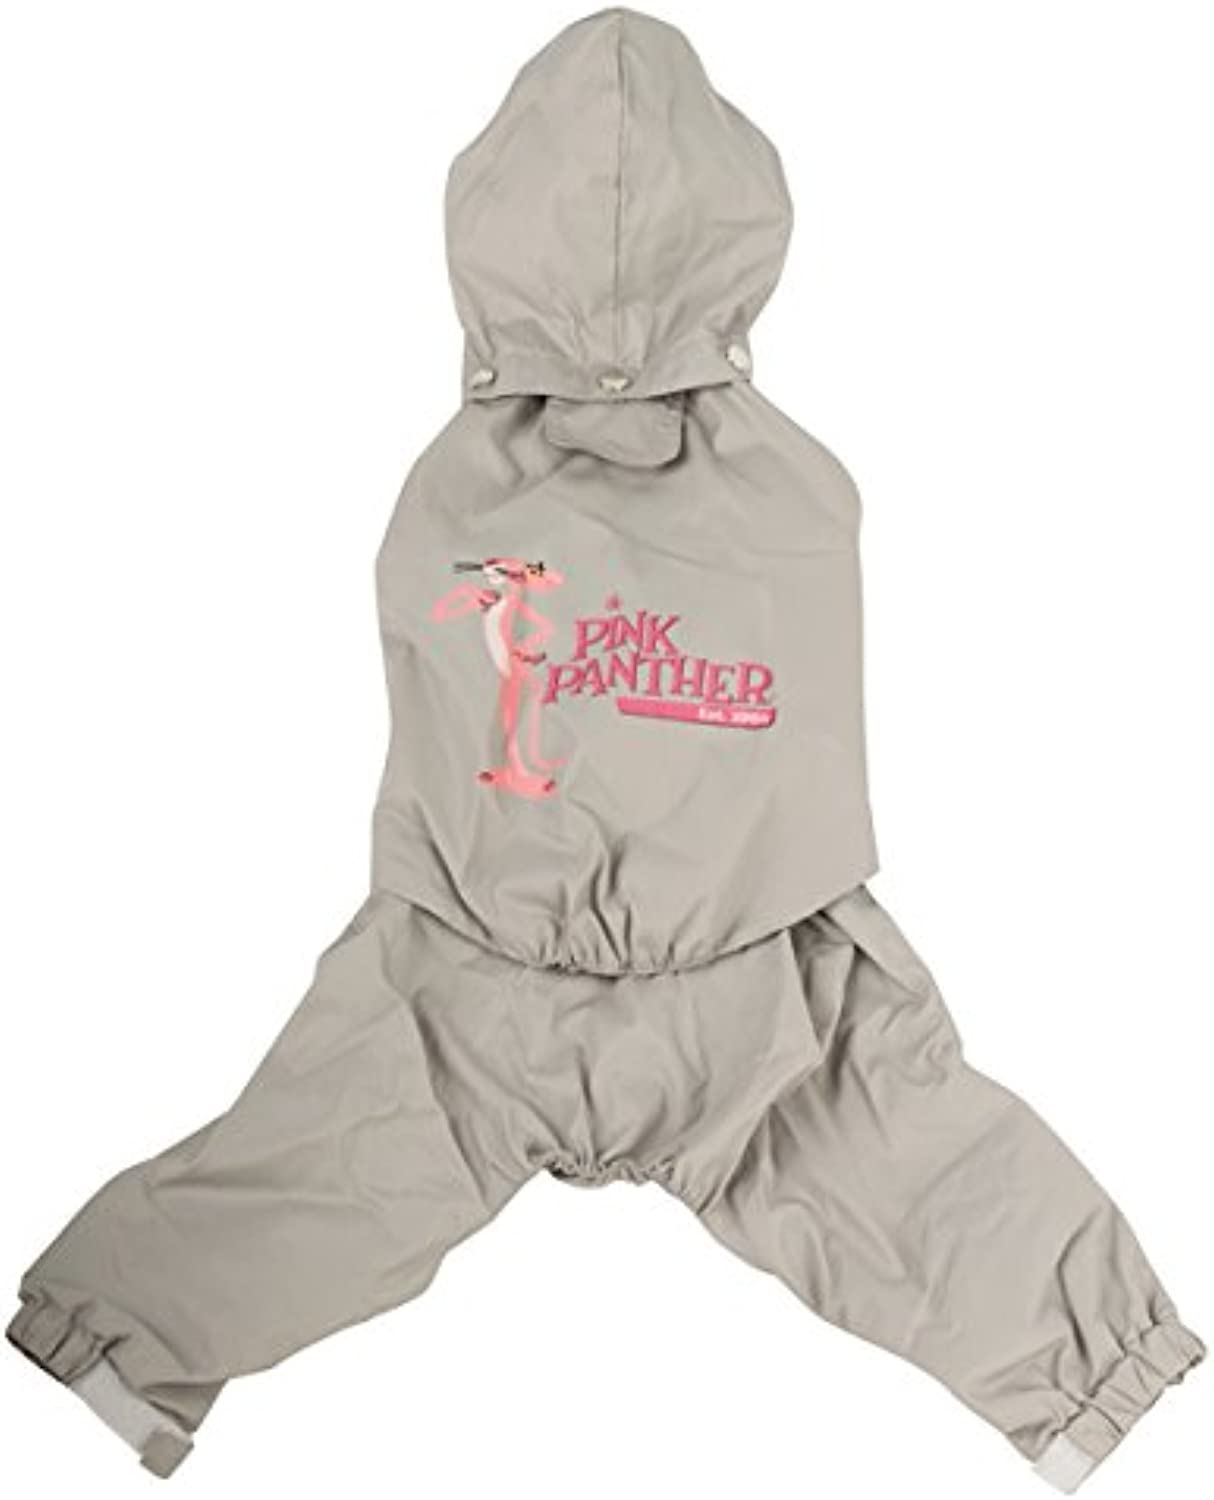 Pink Panther Detachable Hooded Raincoat with Legs, XLarge, Ice Grey